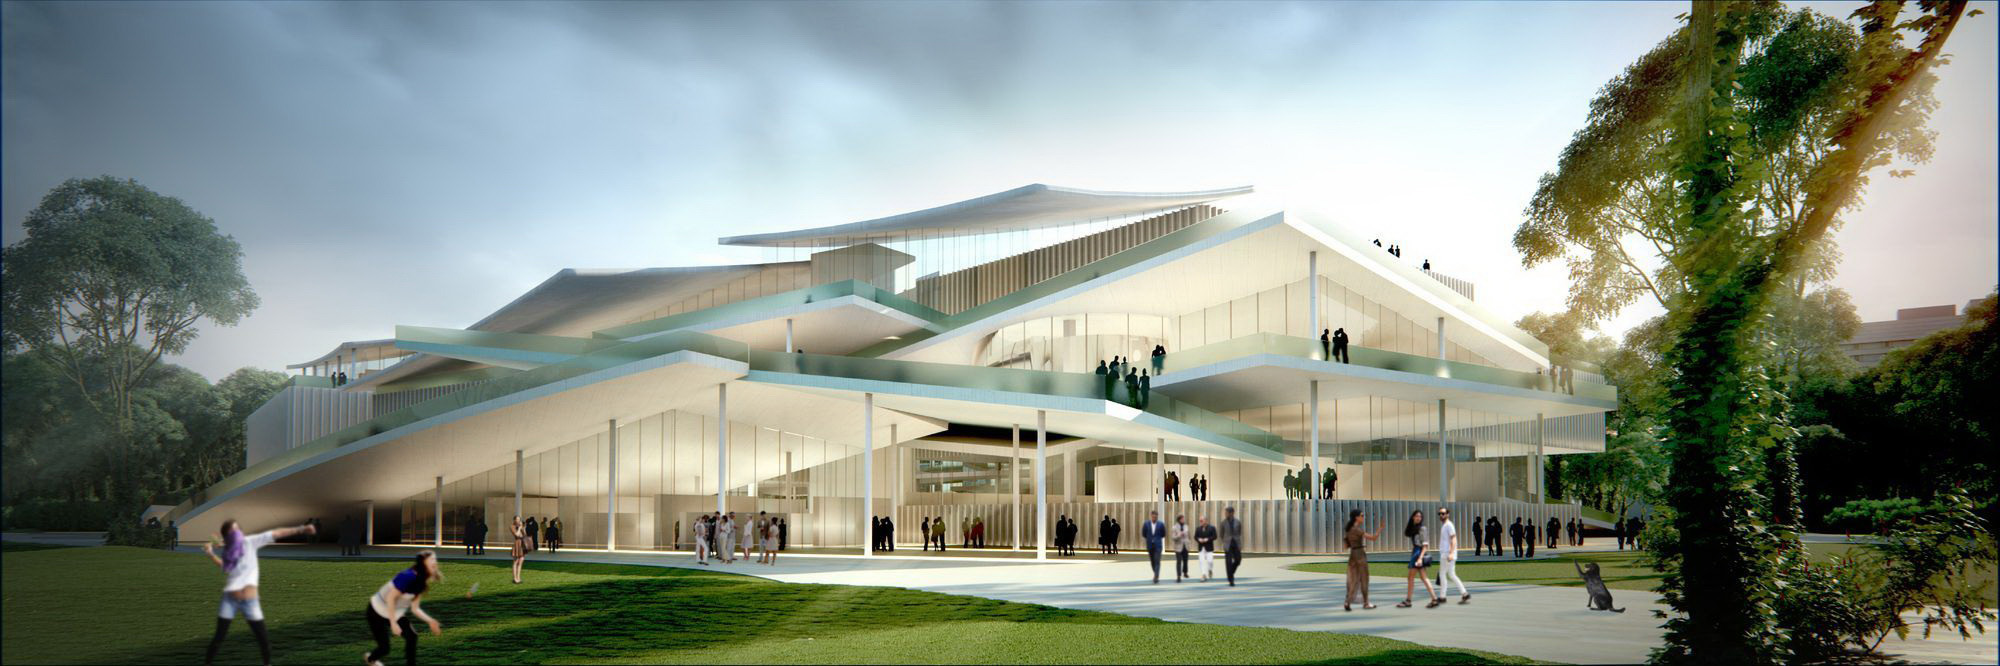 mm_new national gallery-ludwig museum design by SANAA_06